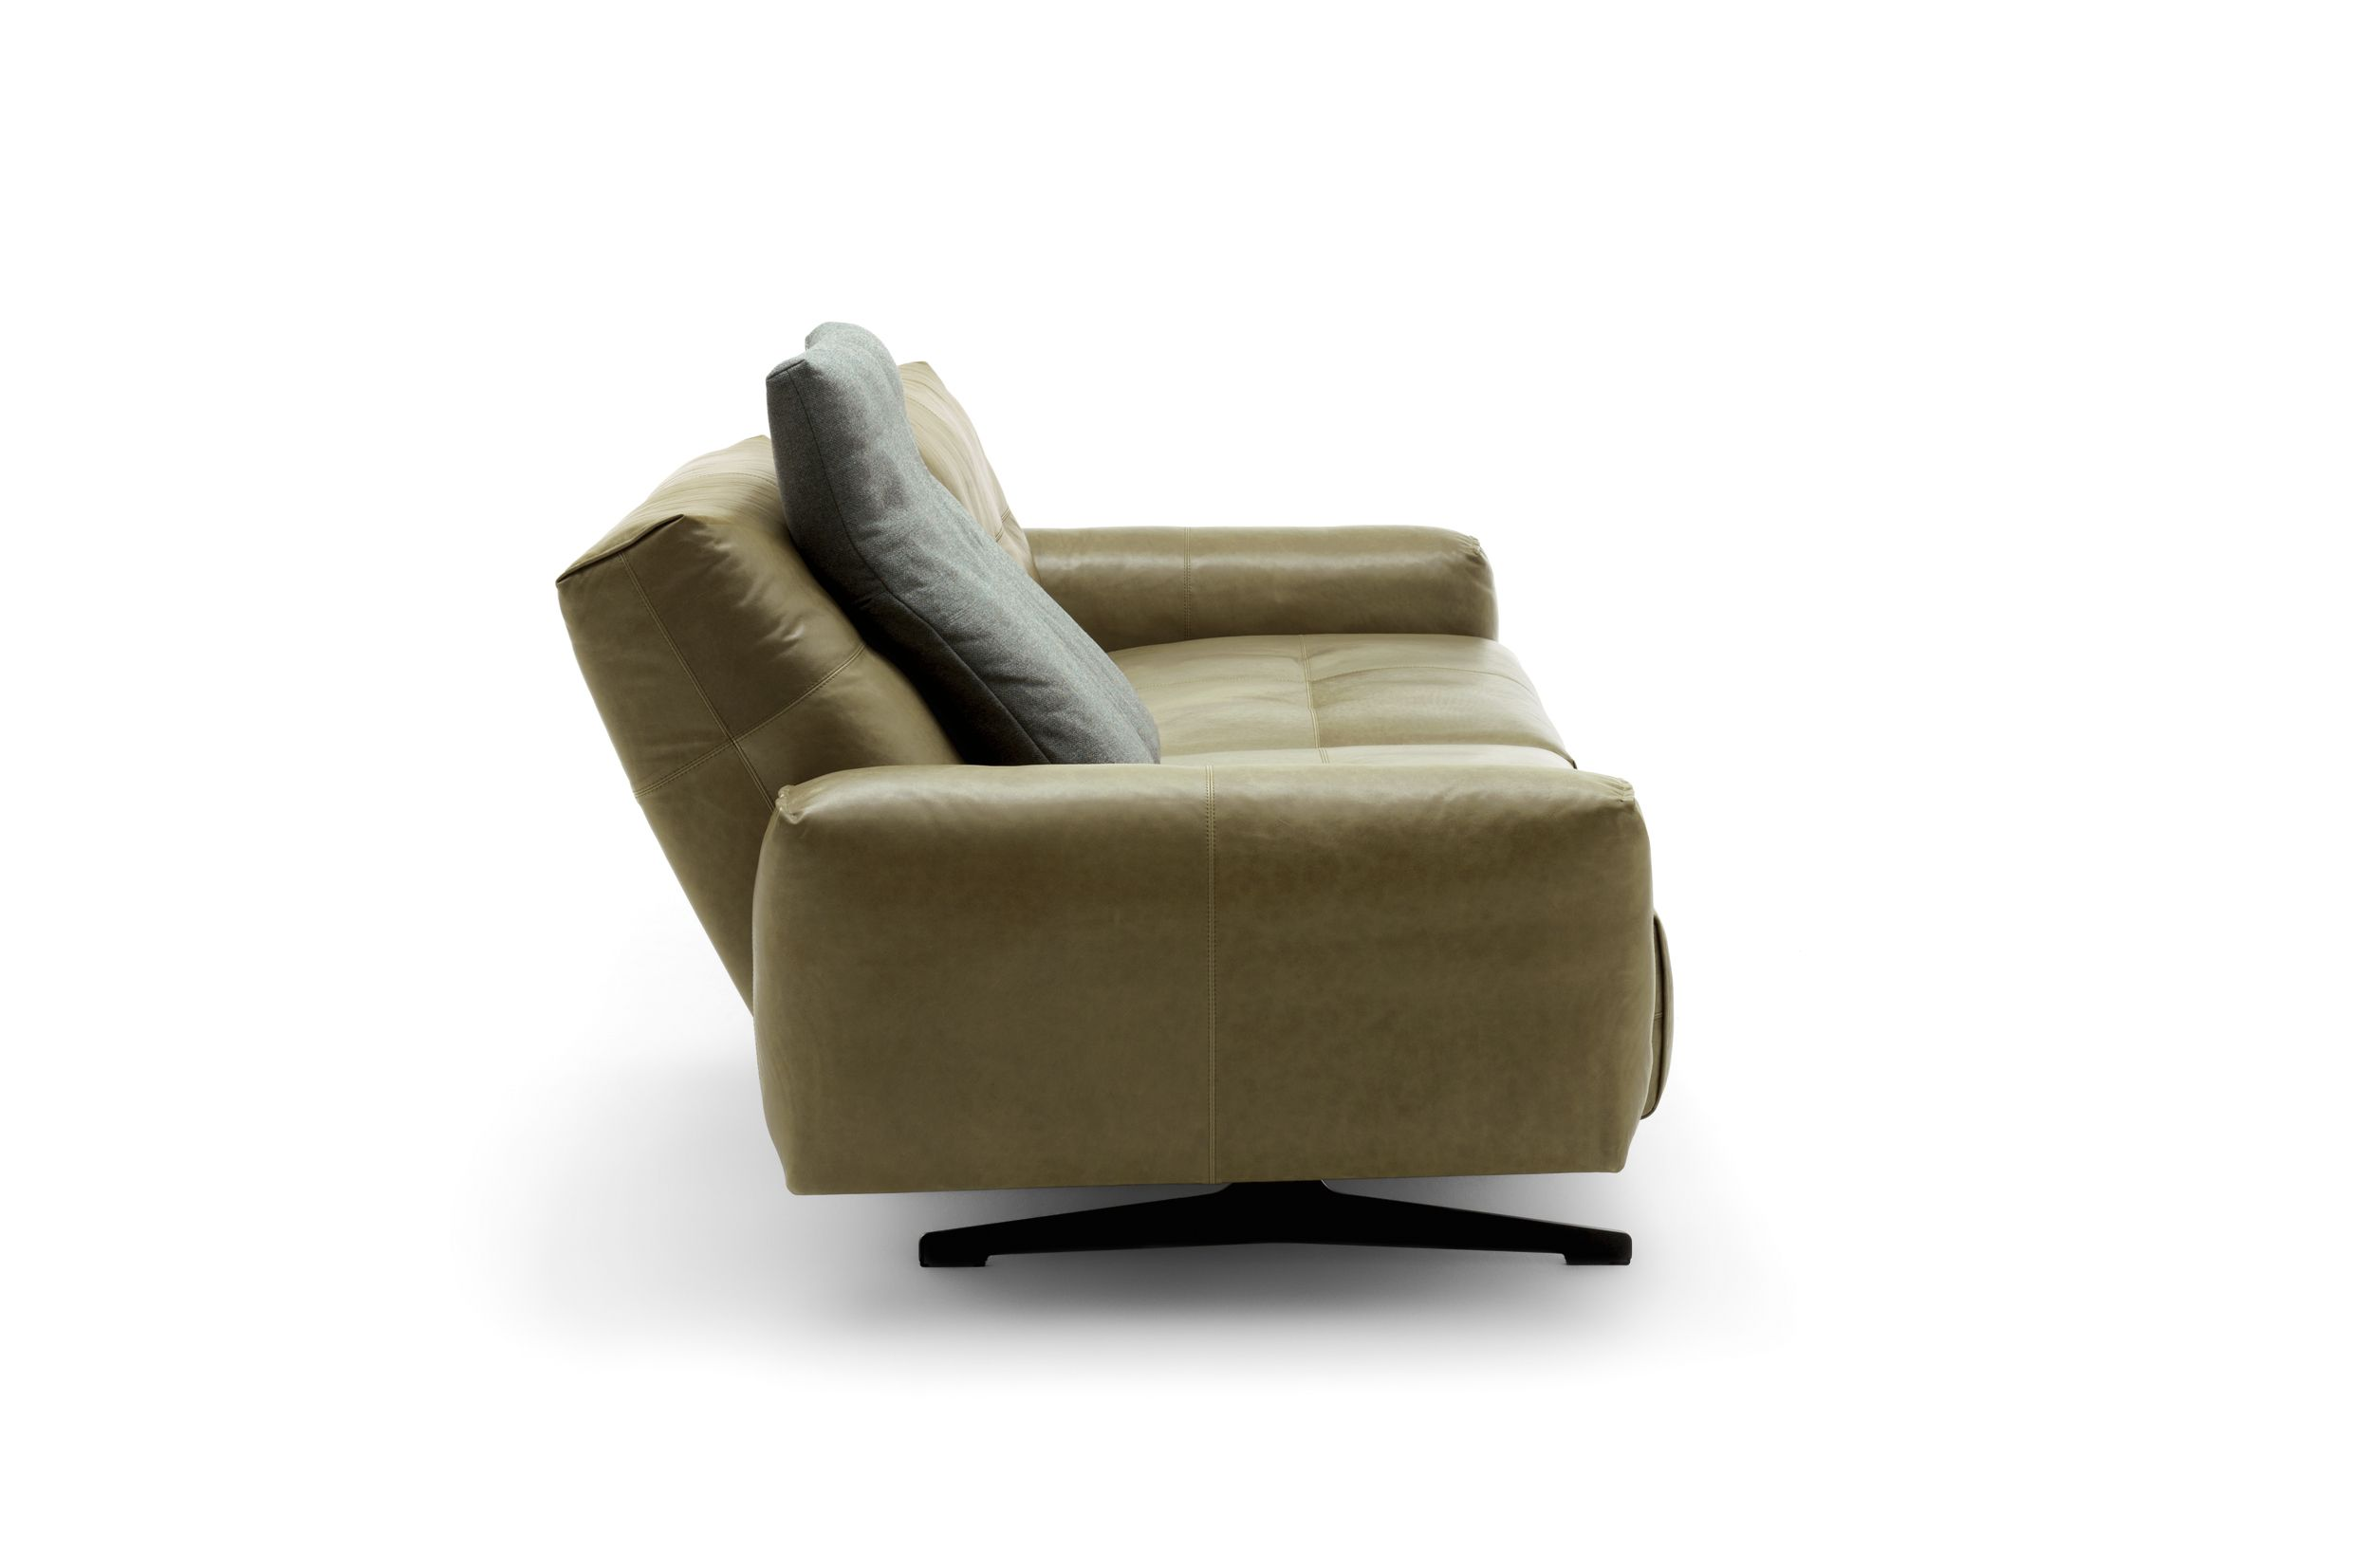 Rolf Benz 50 sofa The 50th anniversary sofa system is a tribute to